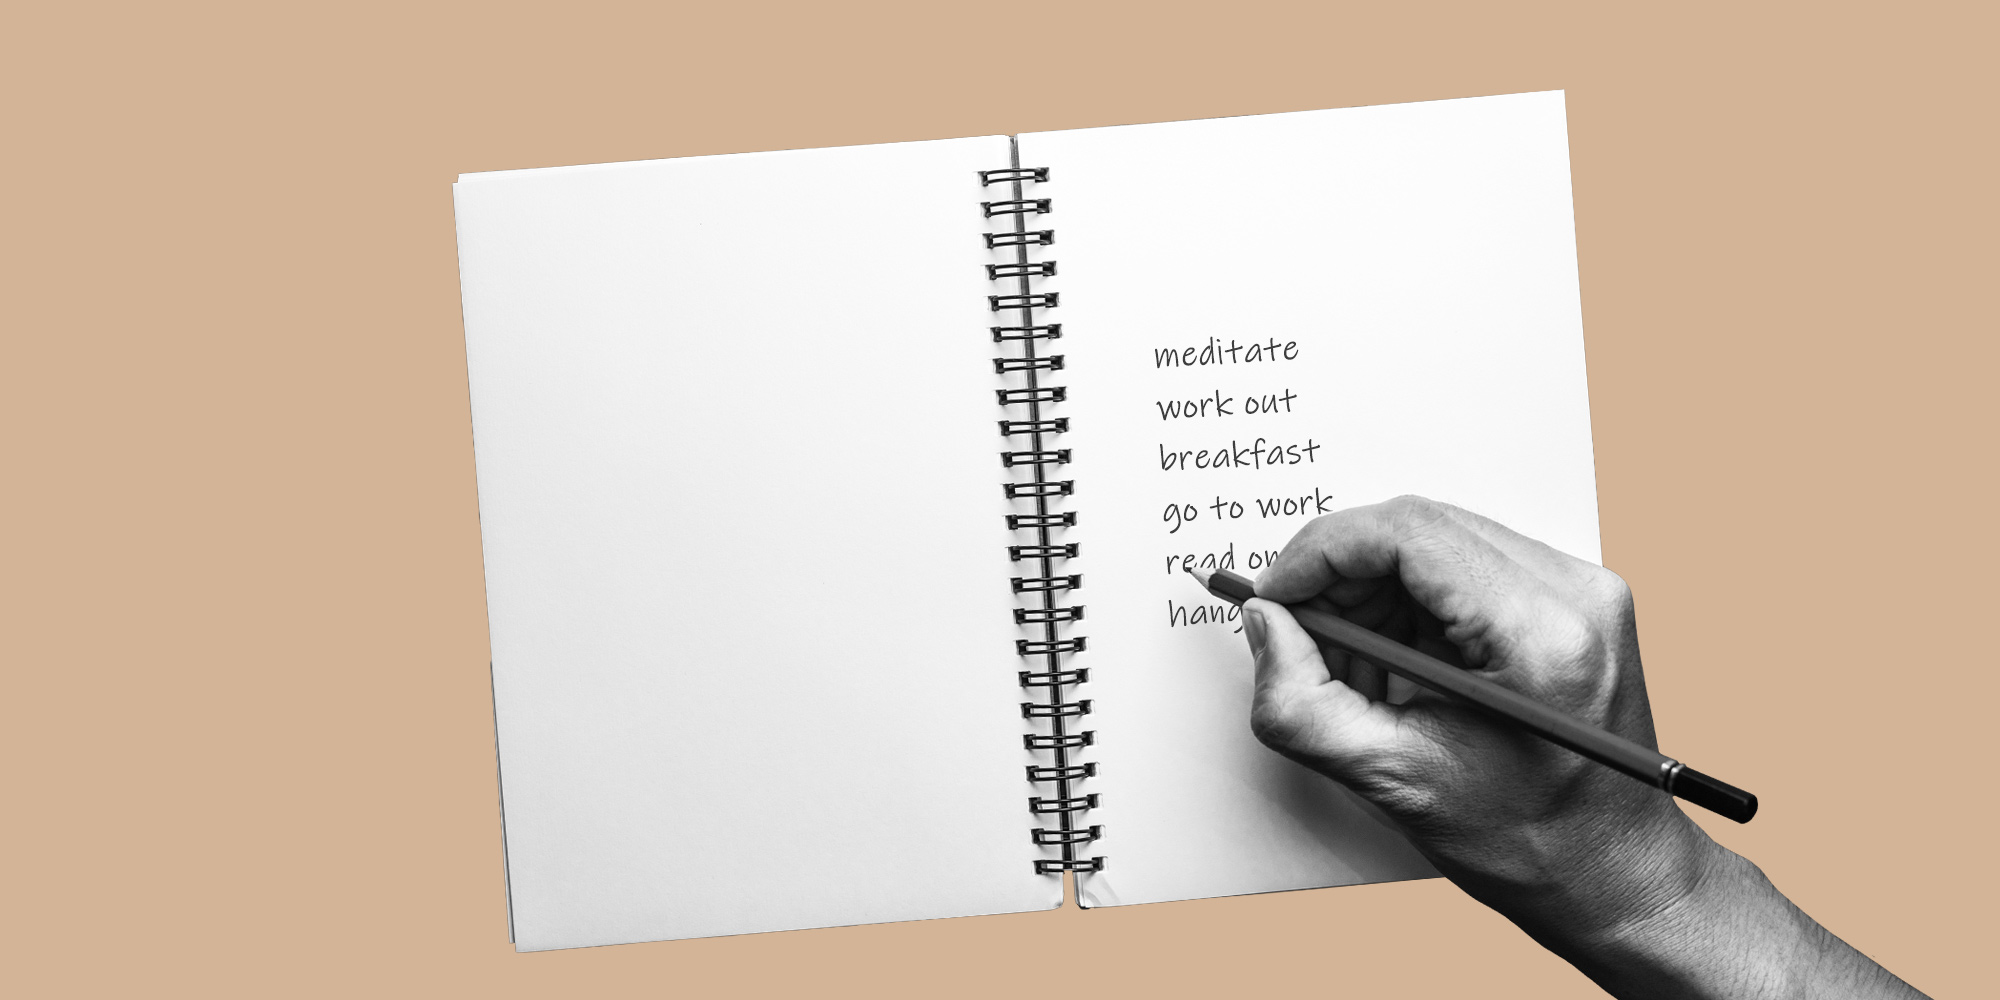 Writing a list in a notebook. Creating a recovery routine